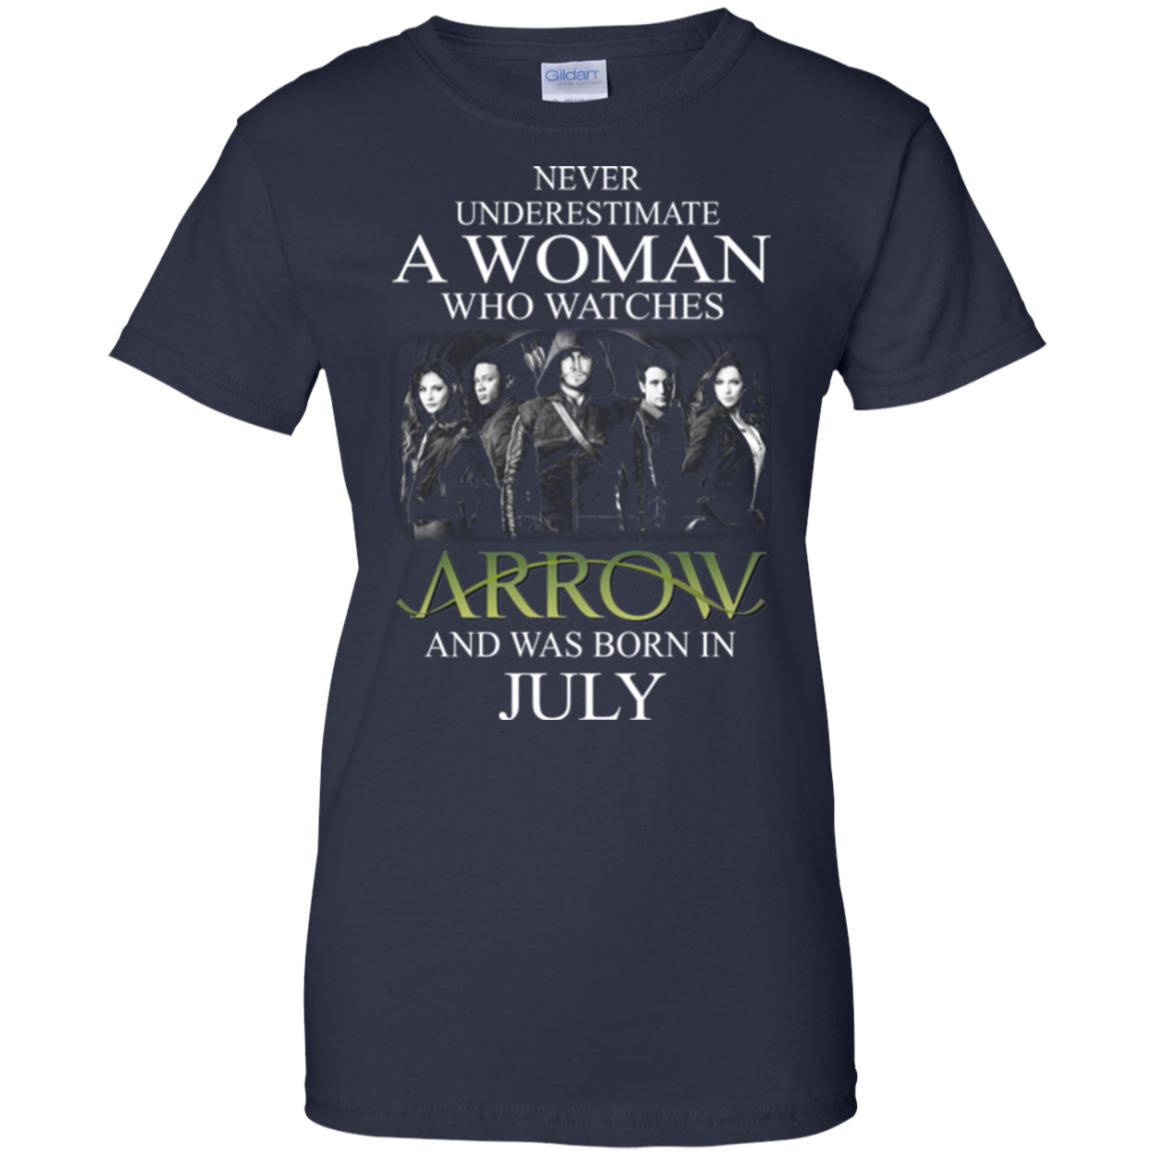 Never Underestimate A woman who watches Arrow and was born in July shirt - image 1529